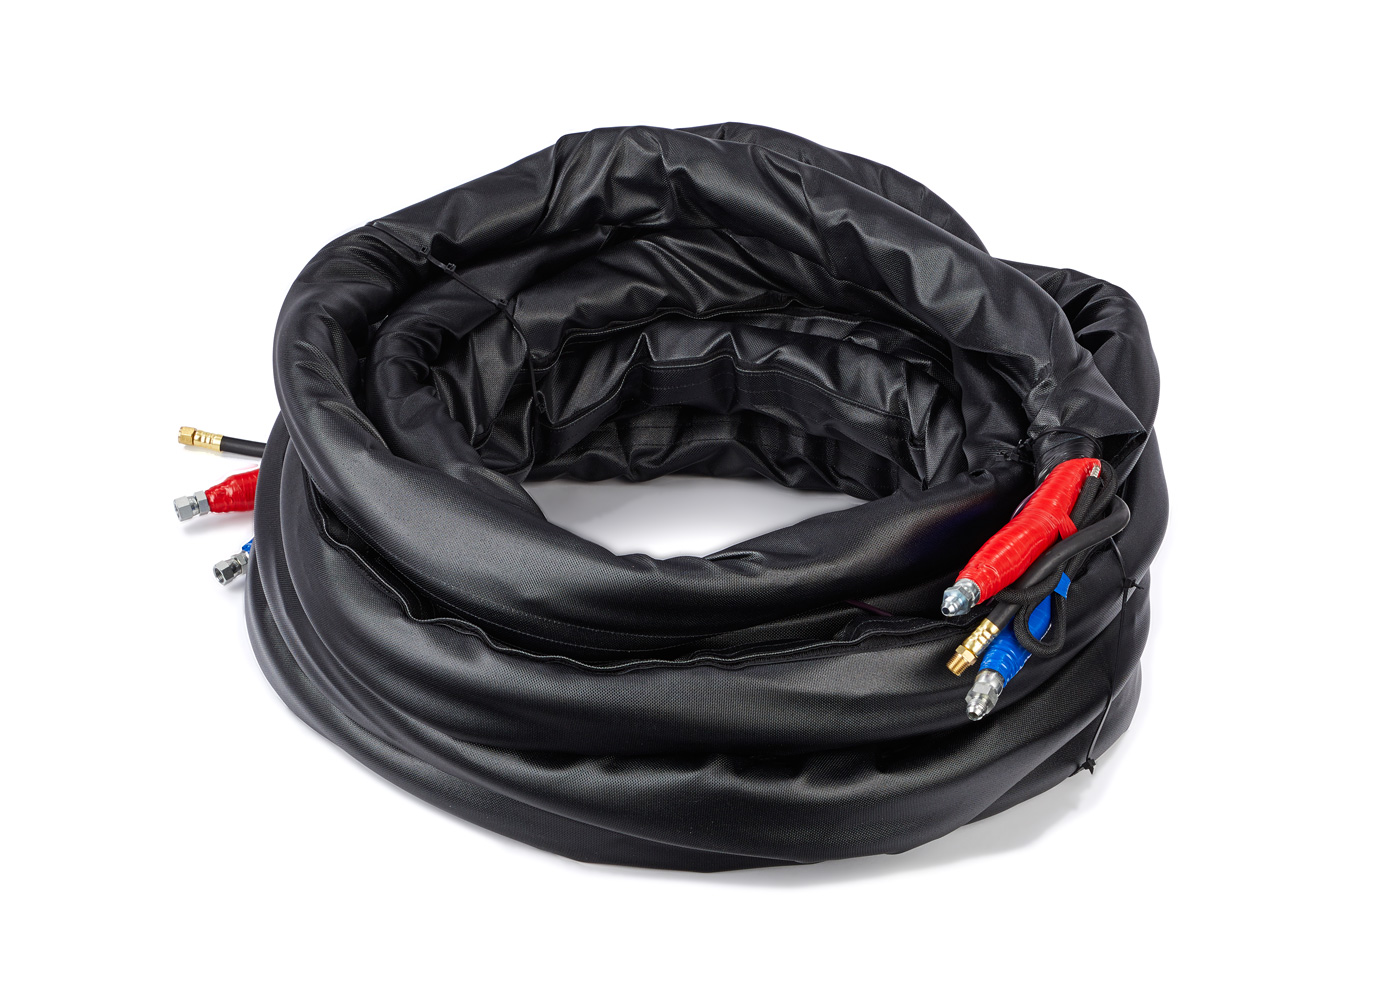 Télécharger une image en haute résolution|/content/dam/graco/aftd/images/outline/reactor-heated-hose-xtreme-wrap-50ft.jpg